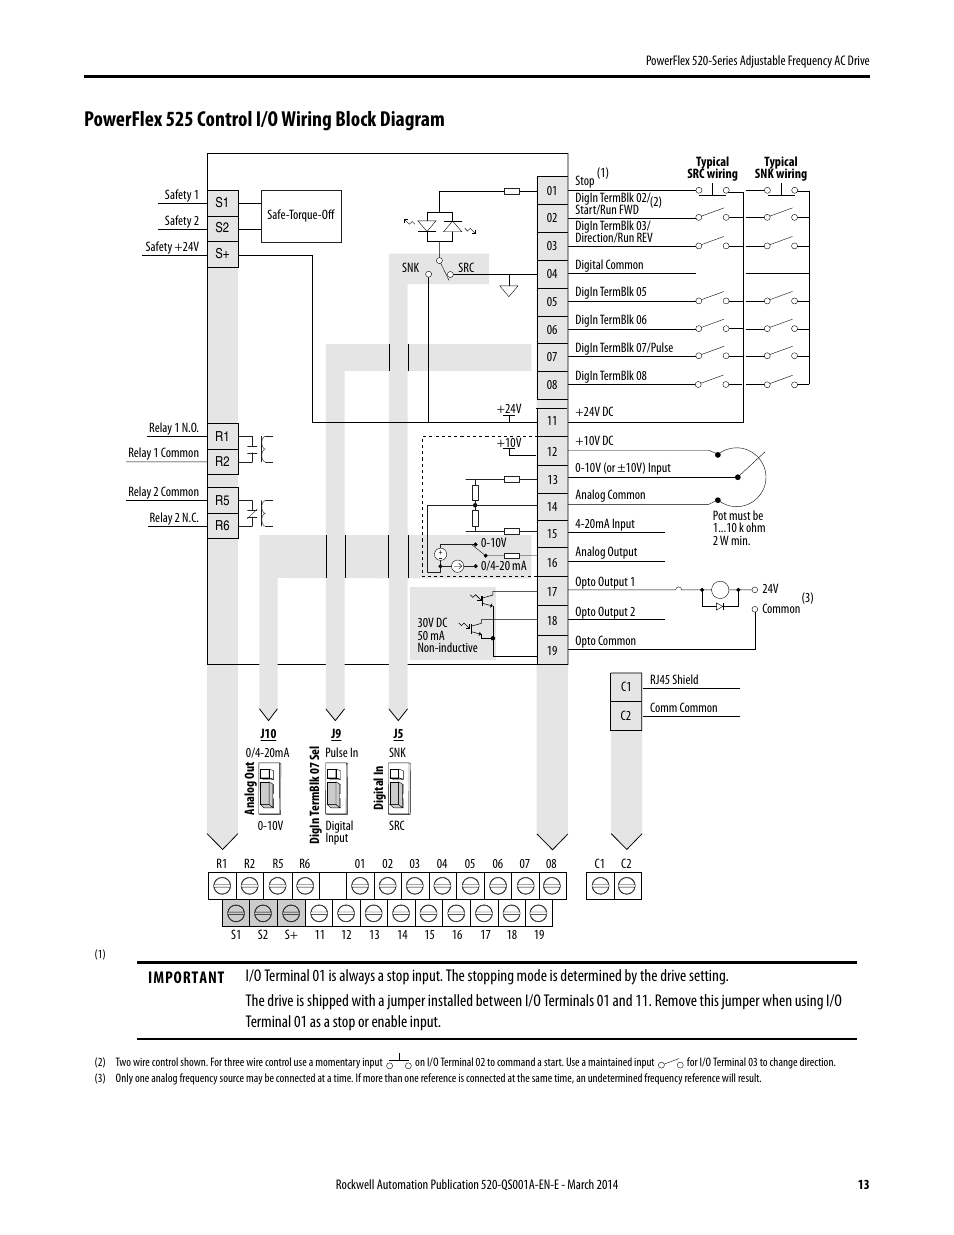 powerflex 525 control i o wiring block diagram rockwell automation rh manualsdir com PowerFlex 525 Voltage Supply PowerFlex 525 Voltage Supply